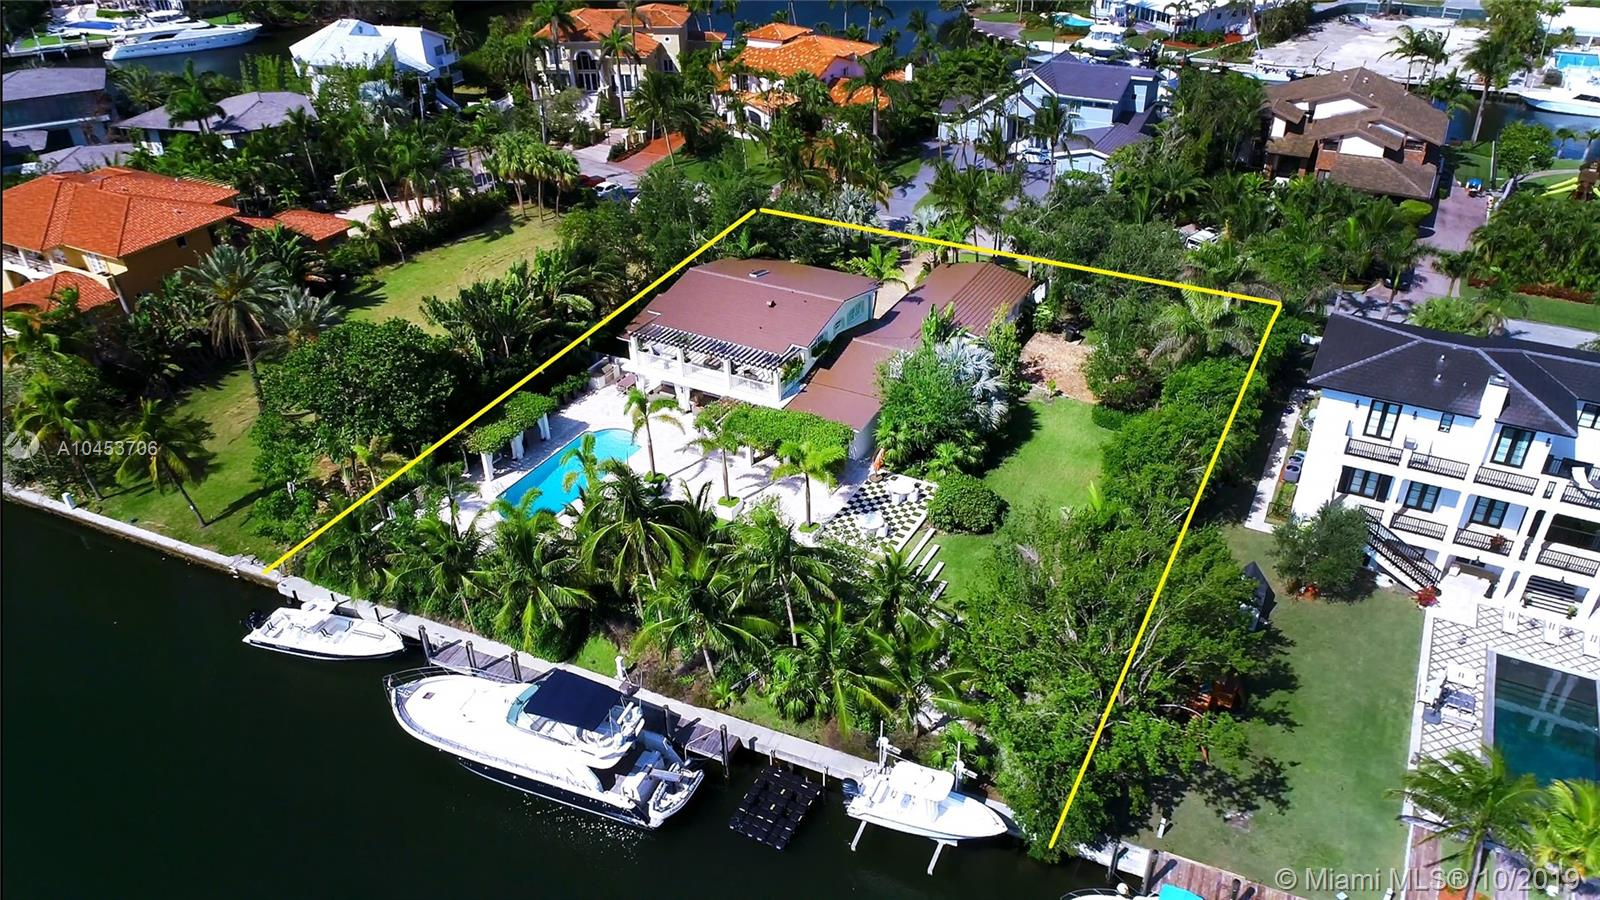 Nestled on a Double Lot - this home features 4 beds / 5.1 baths on a 27,900 sf gated lot in Coral Gables guard/gated community, Sunrise Harbour. The property boasts 160 ft water frontage, on a wide channel and includes a private dock and boat lift with direct ocean access. Master suite is located on the second floor with 2 separate bathrooms, oversized walk-in closet, sitting area and private terrace overlooking the manicured European-style backyard. Open kitchen with Subzero refrigerator and Viking appliances. Large formal dining area with wood beam ceiling opens to an alluring lush pergola covered terrace, summer kitchen and pool. Family room includes stone fireplace. 2 driveways and air conditioned 3 car garage with workshop area and service quarters with full bath.